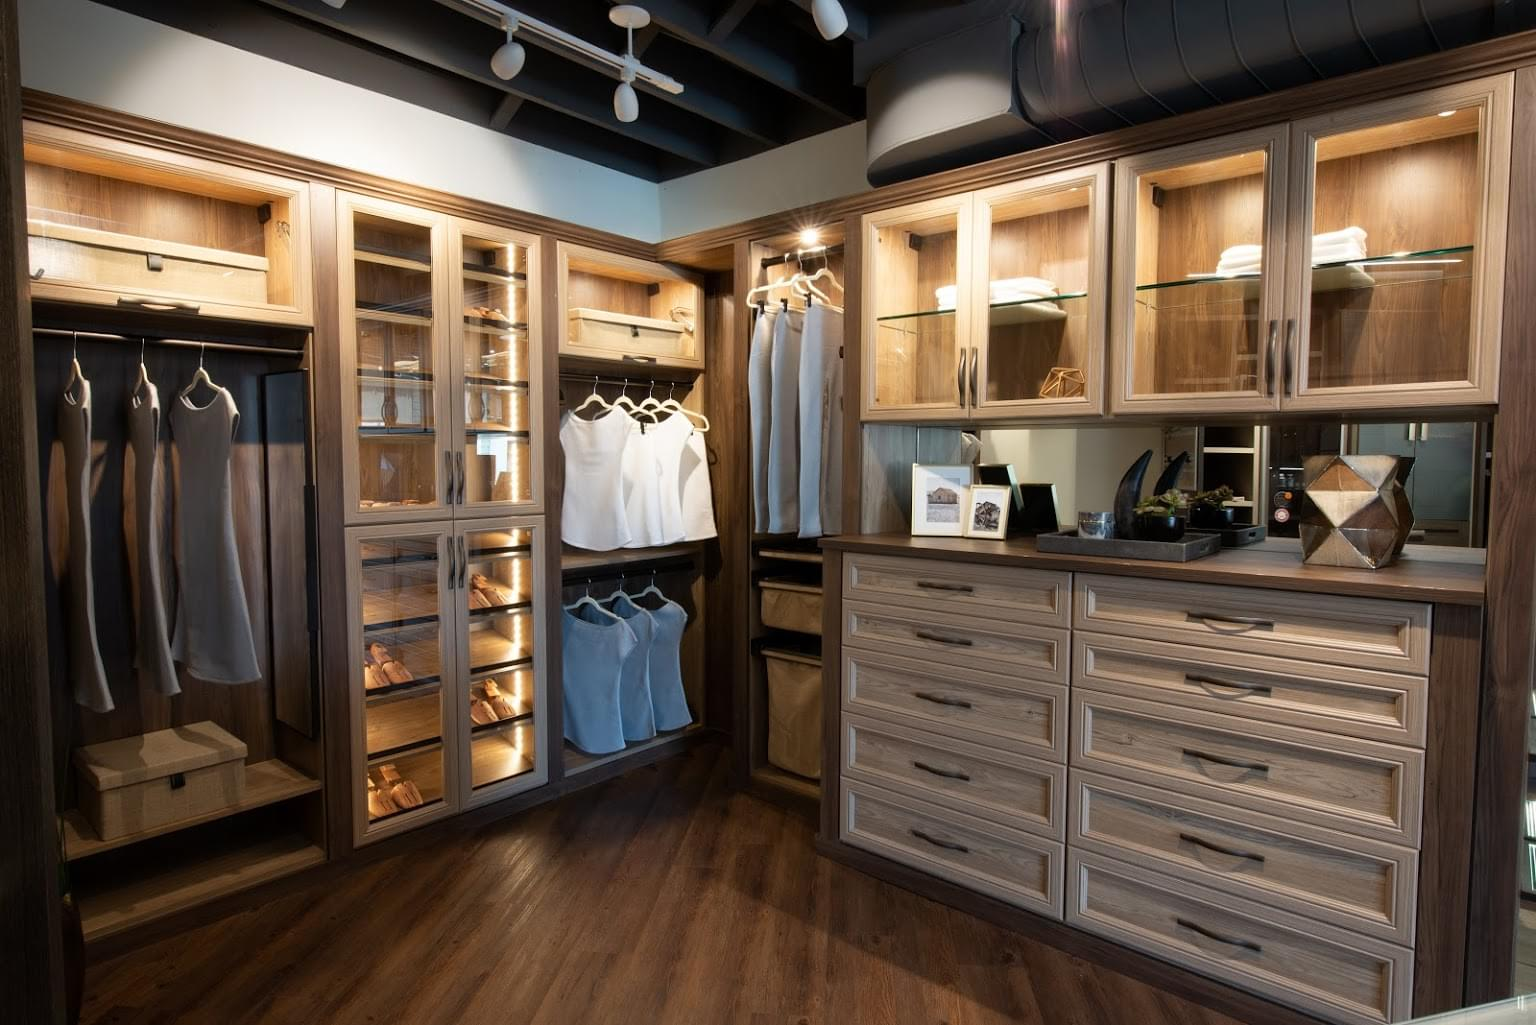 California Closets Interior designer in Corona del Mar, CA